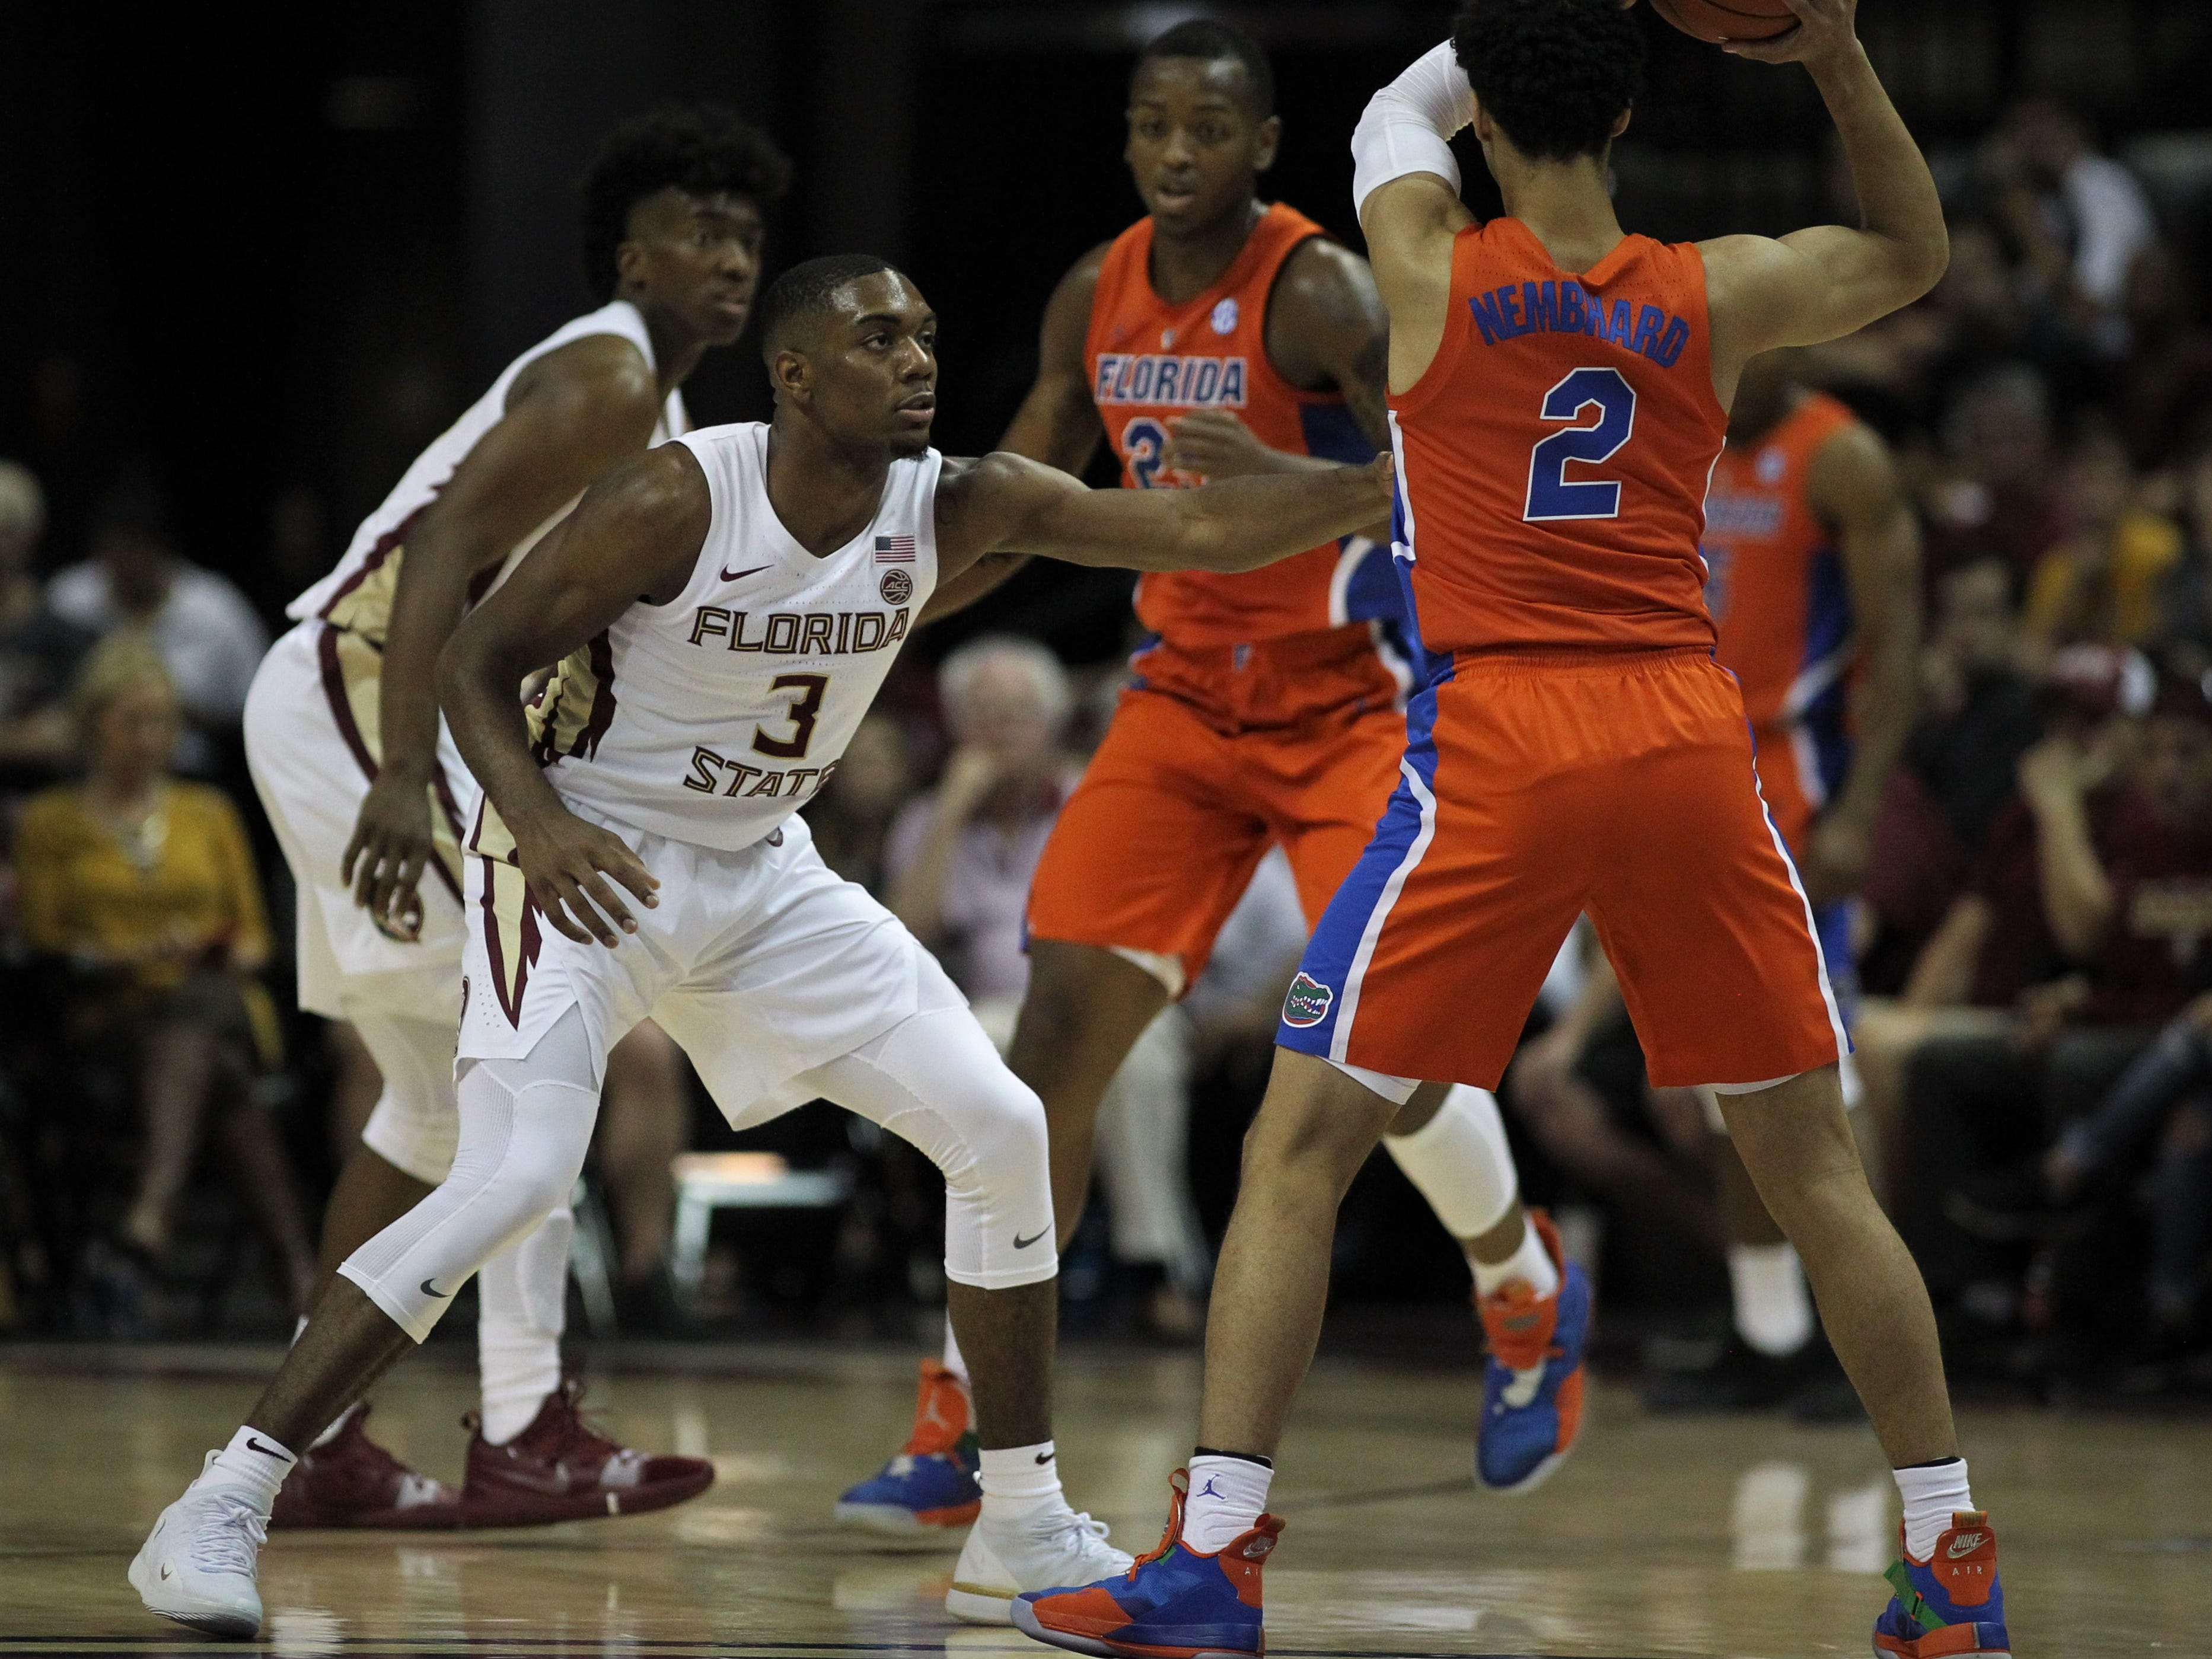 Florida State's Trent Forrest guards Florida's Andrew Nembhard during the Sunshine Showdown game Tuesday at the Tucker Civic Center.